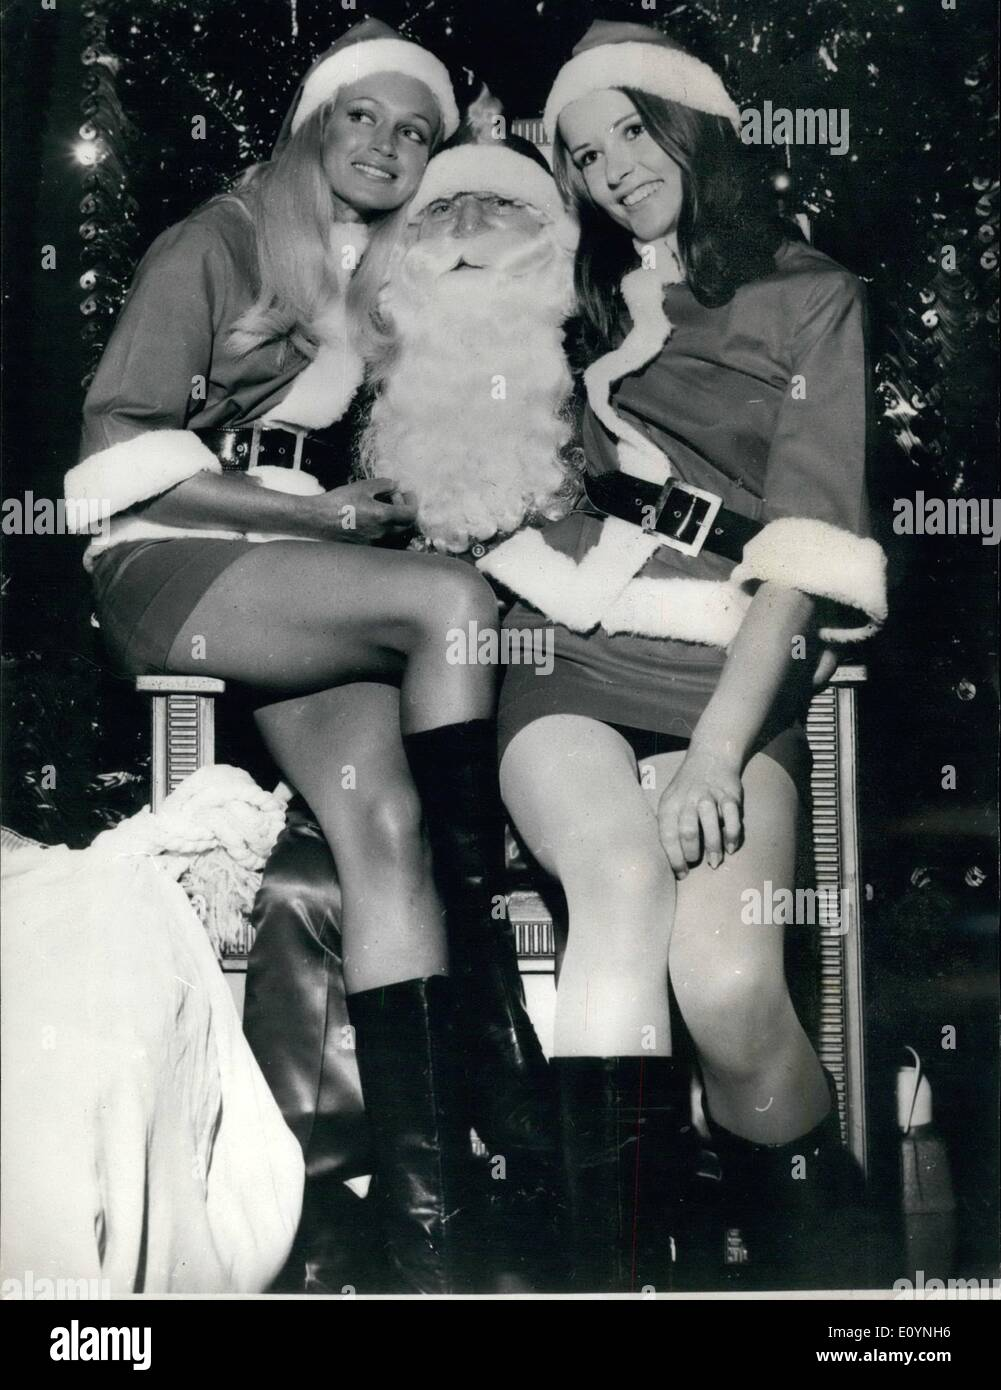 Dec. 12, 1970 - Big Girls Like Santa Too: Christmas 1970 style is a mini-splendoured thing. When Santa arrived at a city store there were no sleighs drawn by reindeer - but there were Santa-maids Virginia Foot (left) and Sue Jackson. - Stock Image